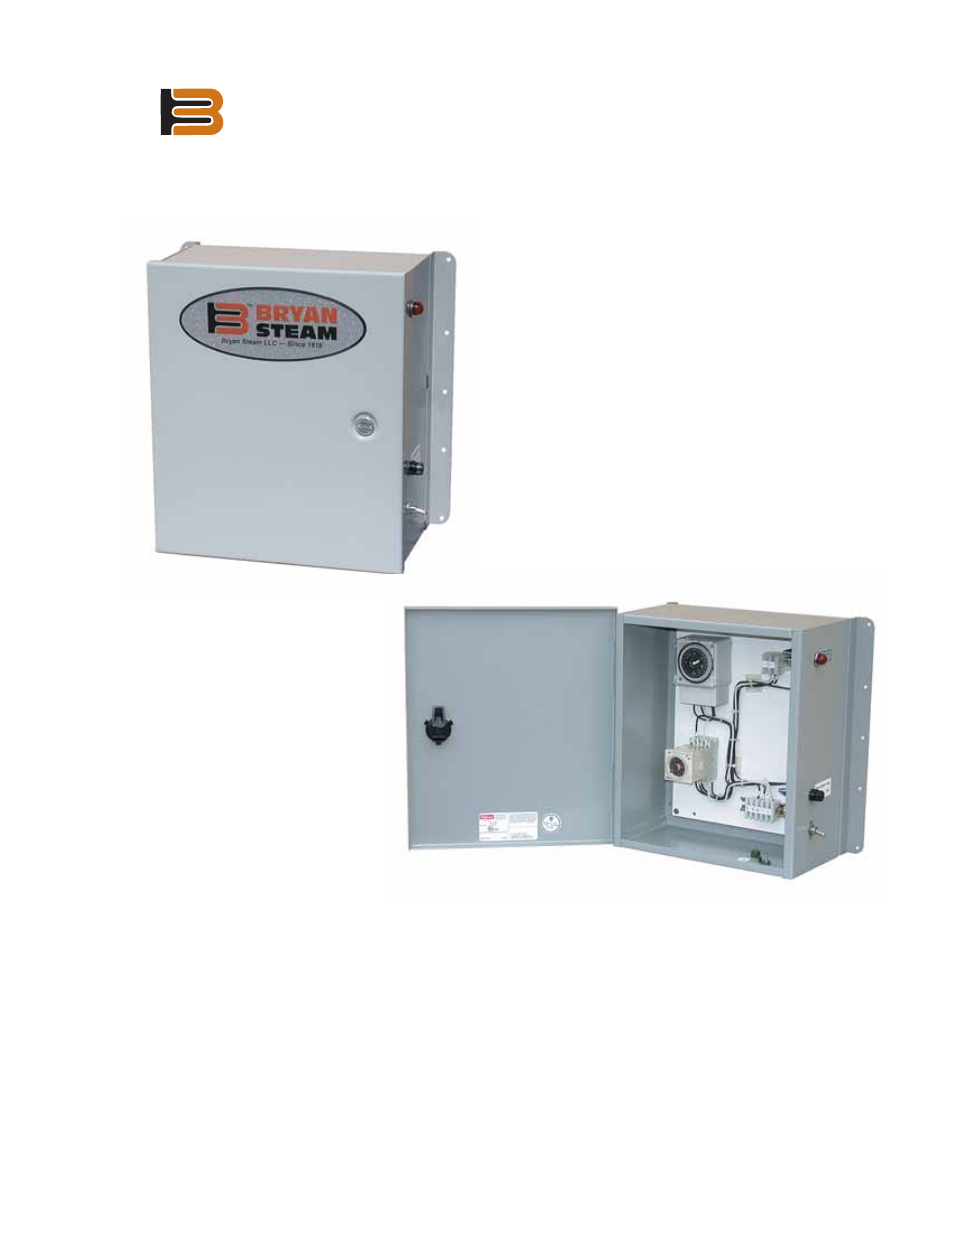 Bryan Boilers CL Series User Manual | 2 pages | Also for: RW Series ...